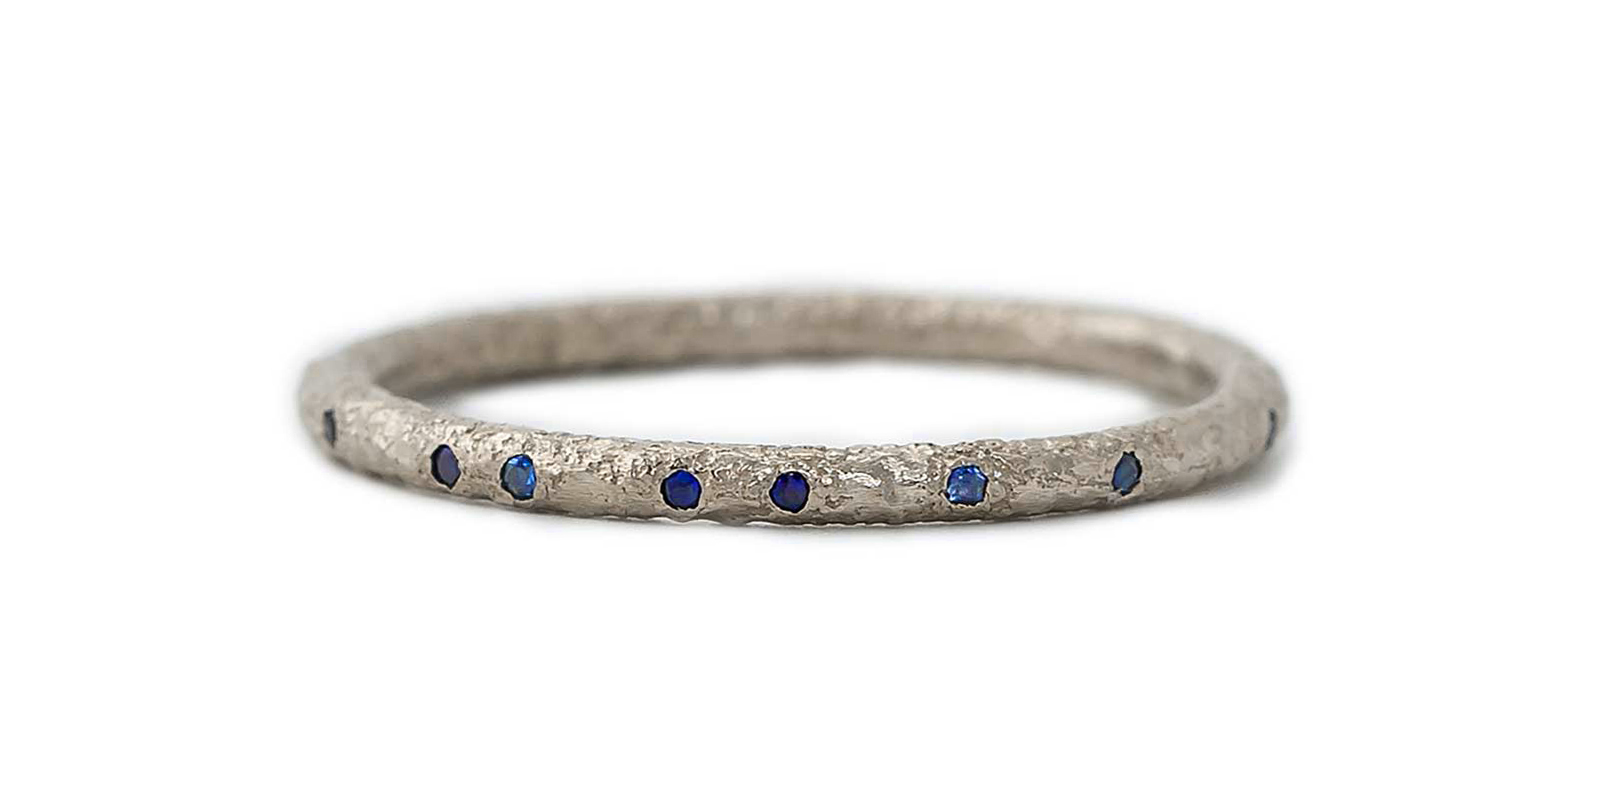 Gem Scattered Eternity Ring – Sapphire, 18ct White Gold